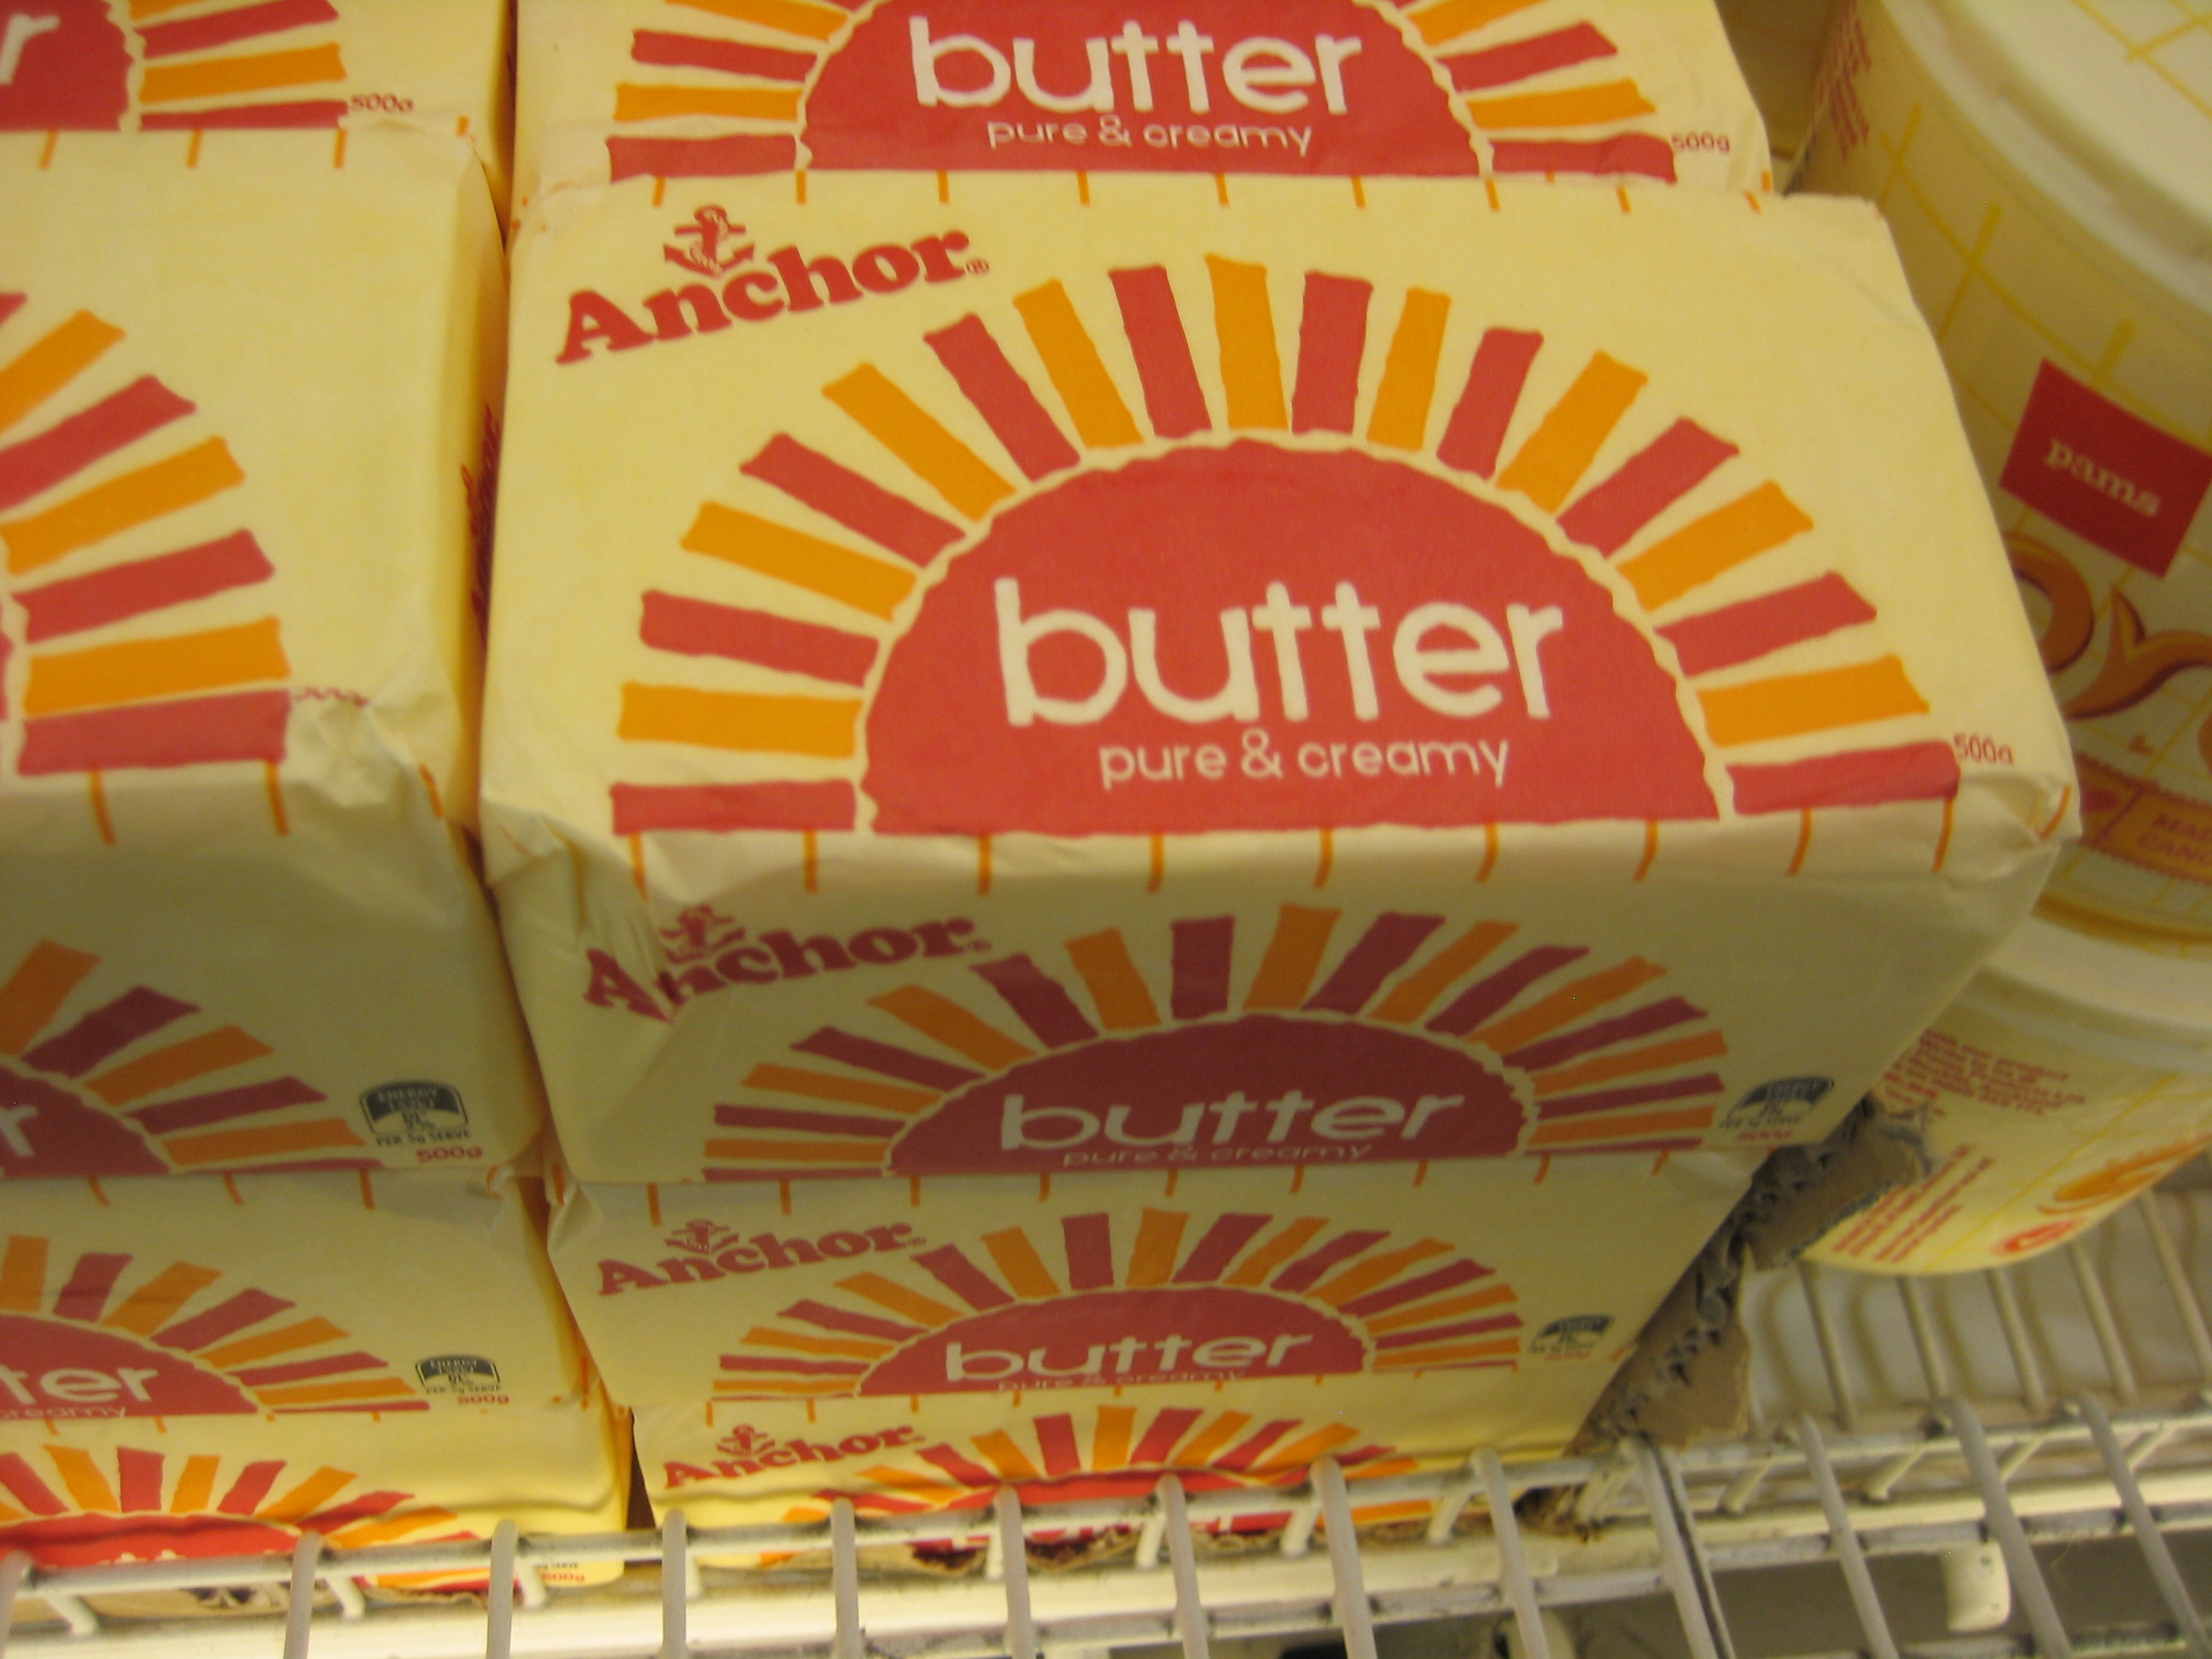 1520f365aa8 New Zealand exporters set to cash in on butter boon - NZ Herald